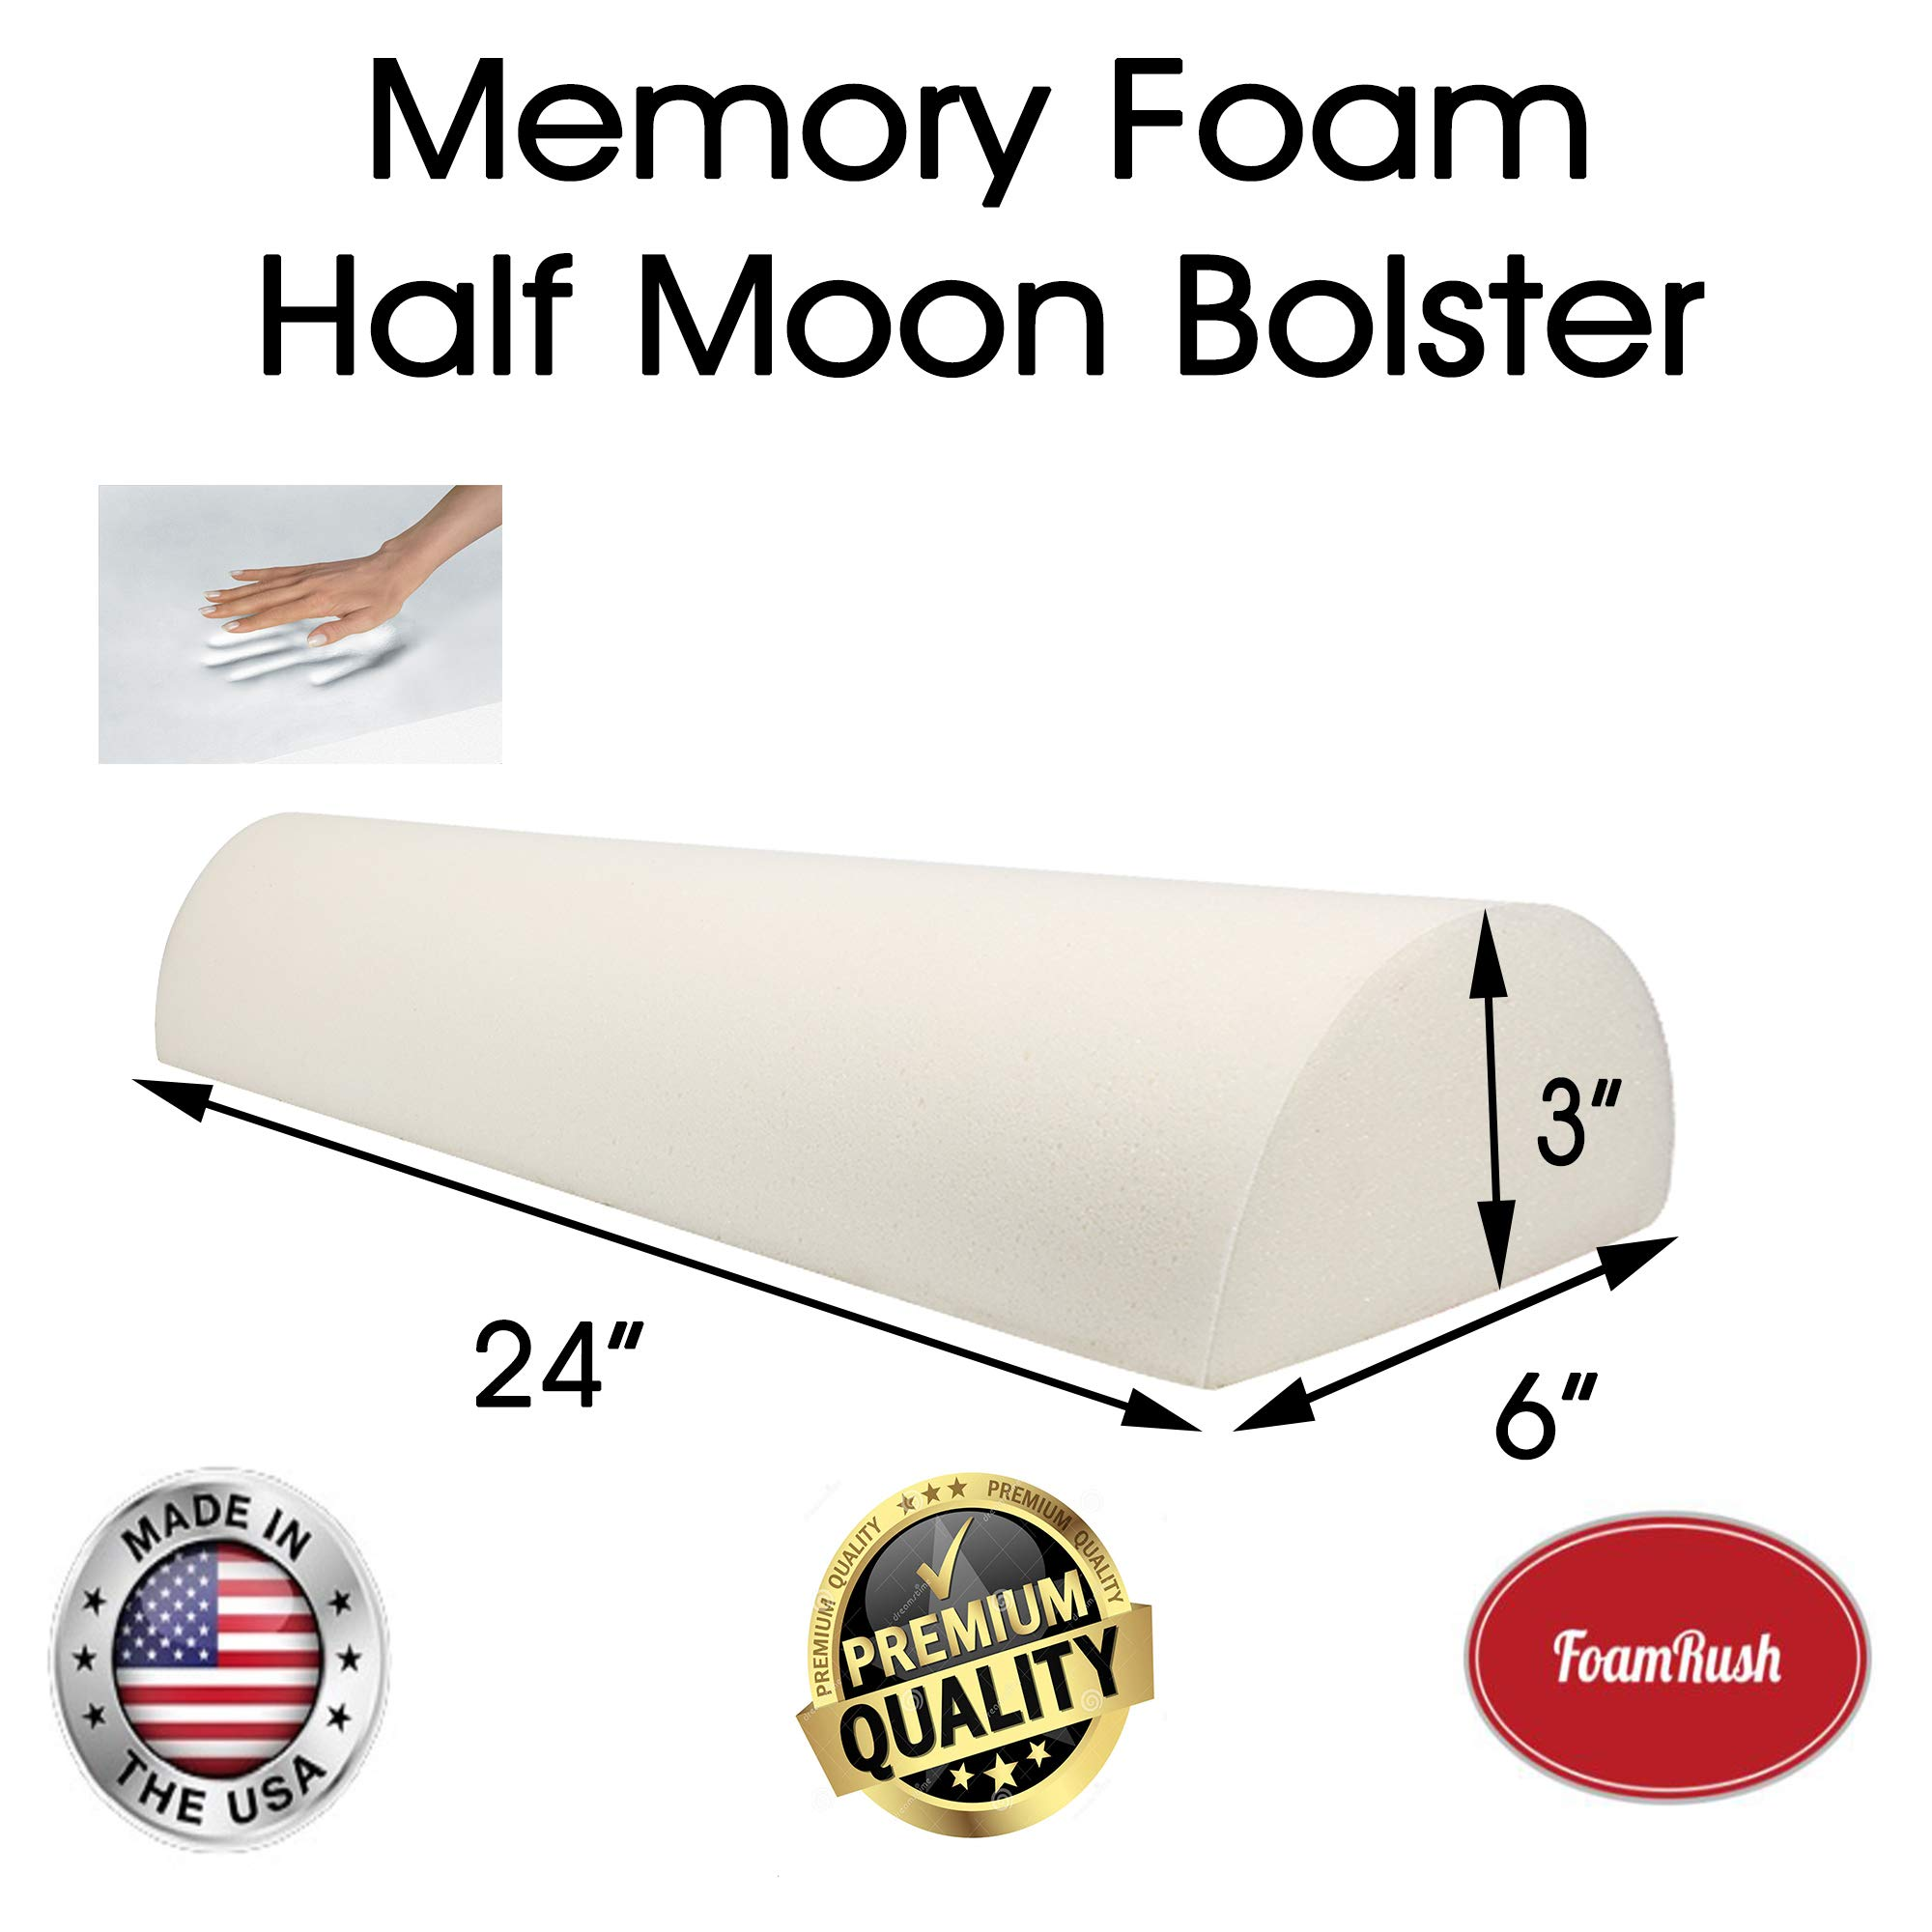 FoamRush 3'' H x 6'' D x24'' L Premium Quality Memory Foam Half Moon, Semi-Roll Bolster Cushion Replacement (Pressure Relief for Side, Back, Stomach Sleepers to Reduce Joint Stress) Made in USA by FoamRush